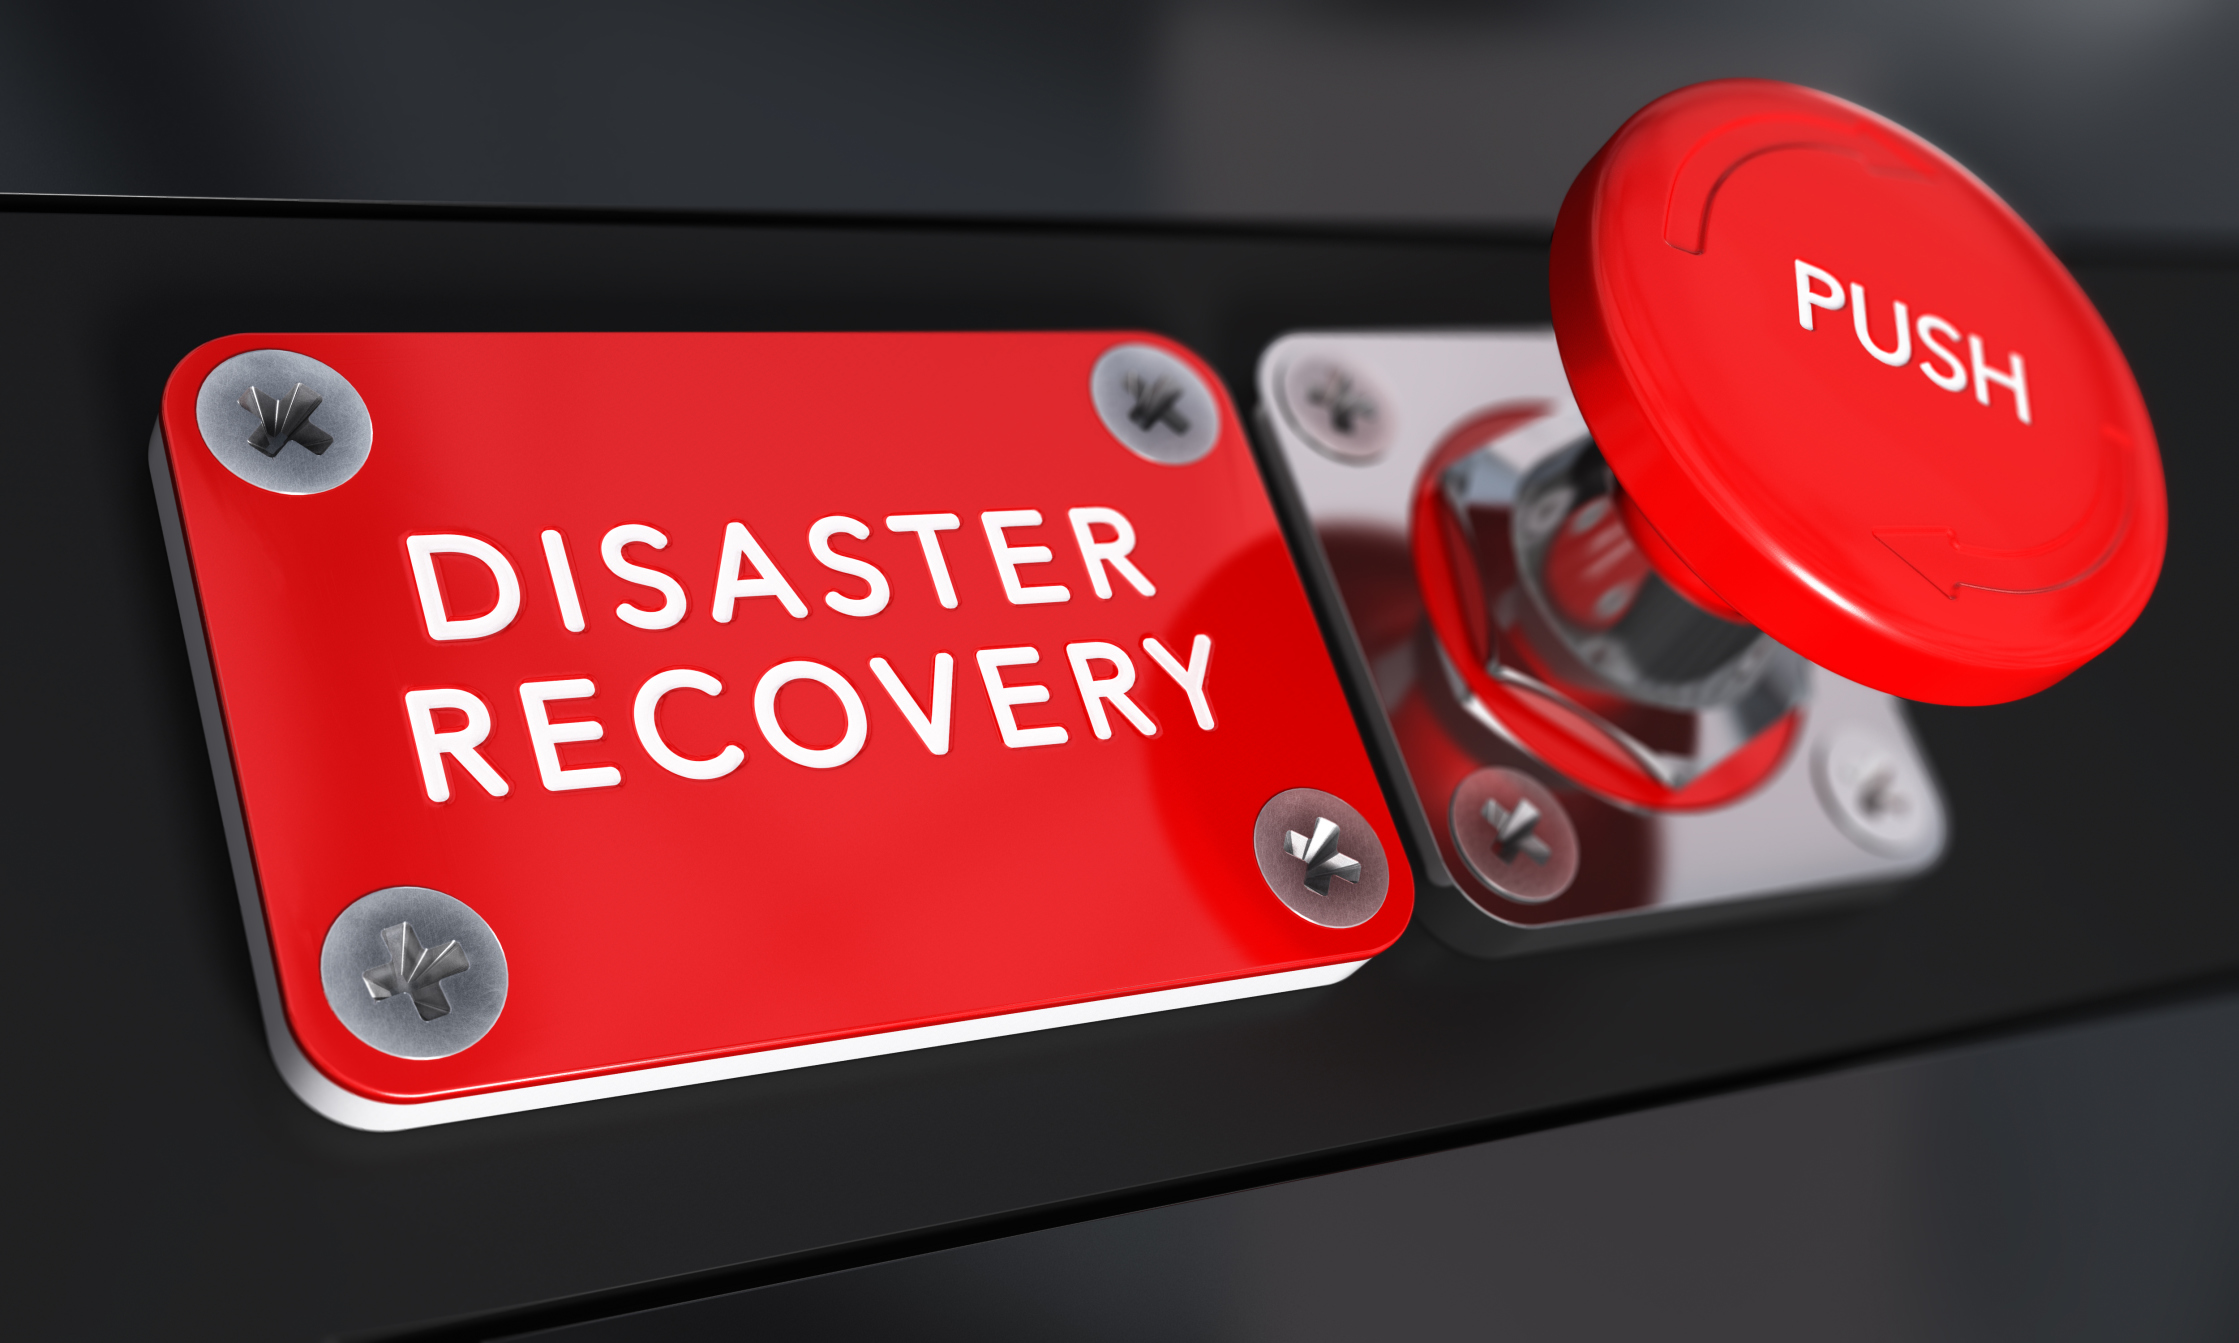 Click on DISASTER RECOVERY to contact ELECTROSTAR Electronics Recovery Solutions